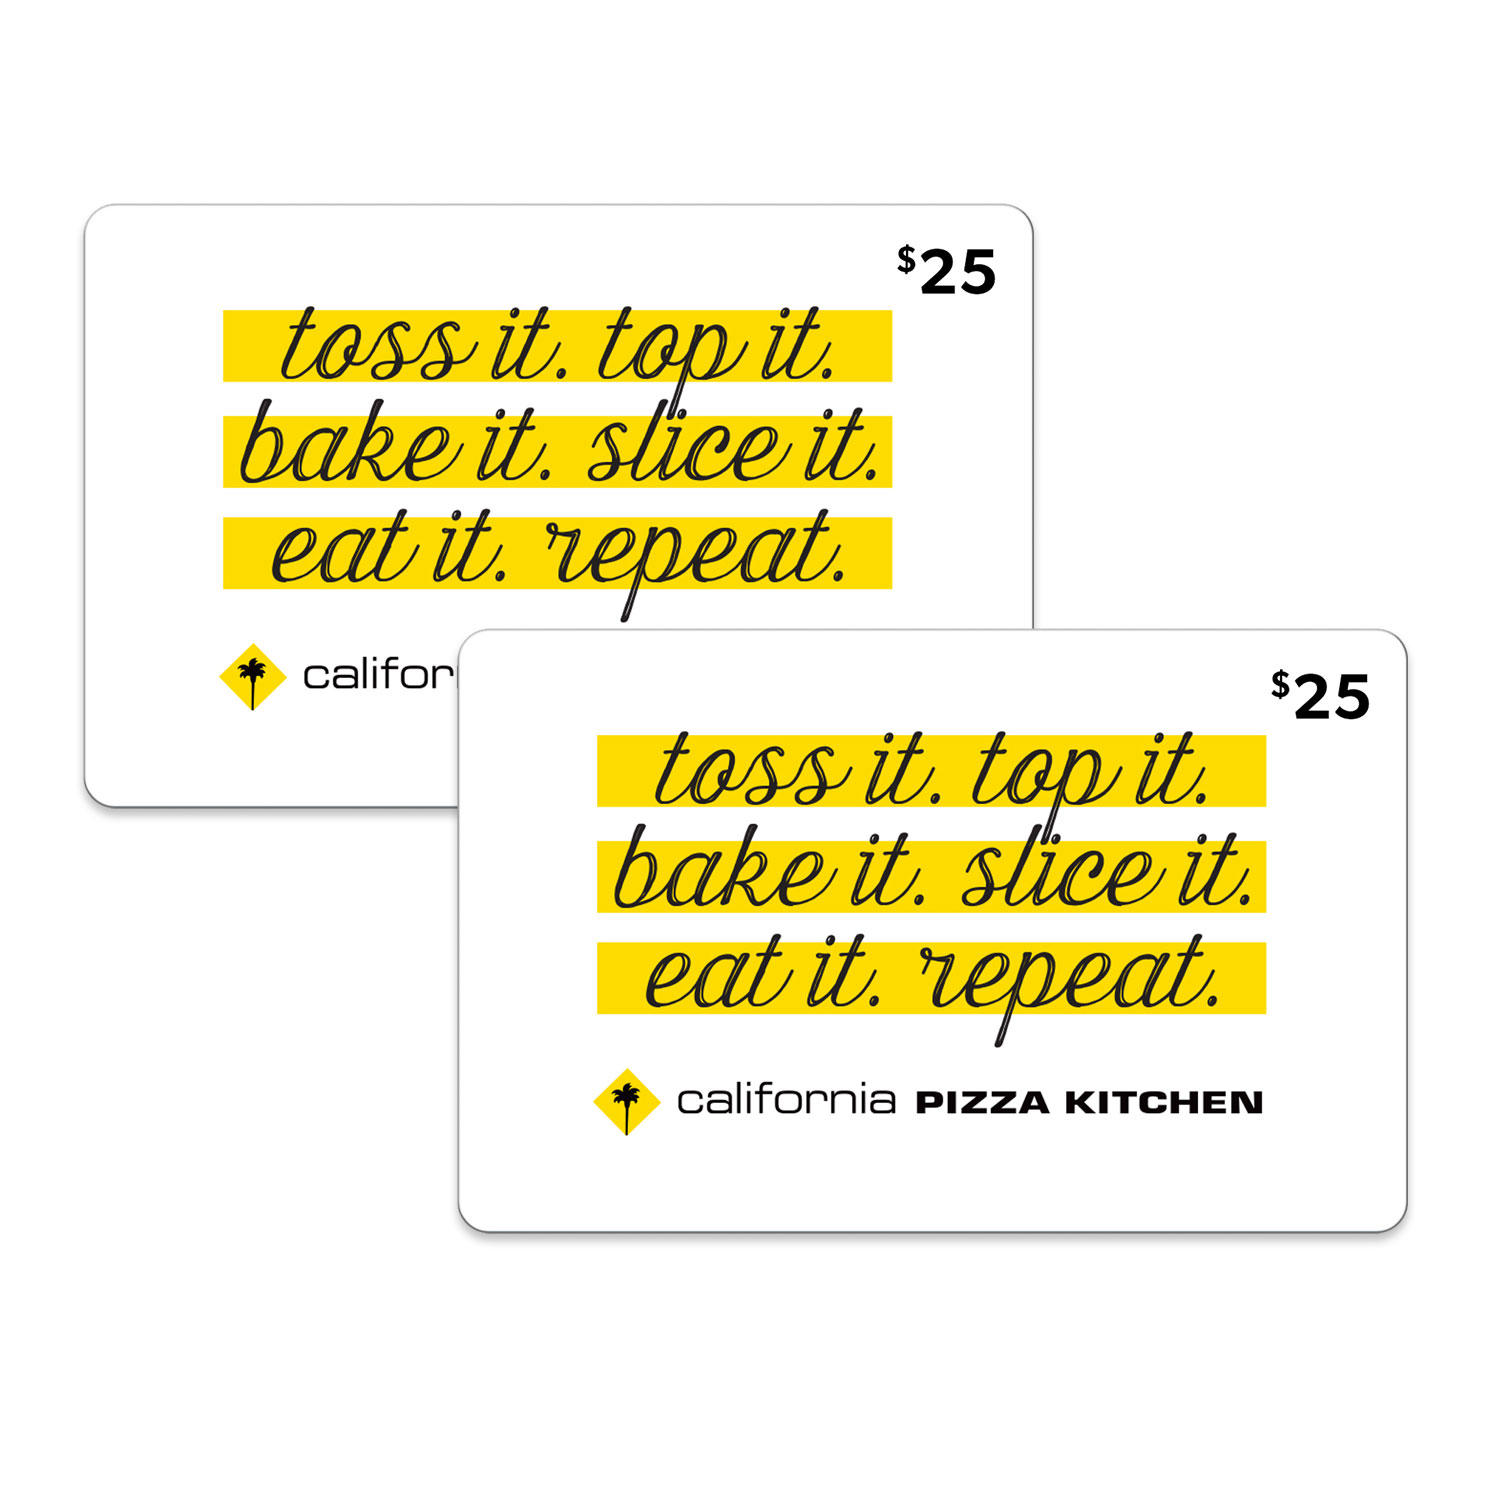 $50 (2 x $25) California Pizza Kitchen Gift Cards